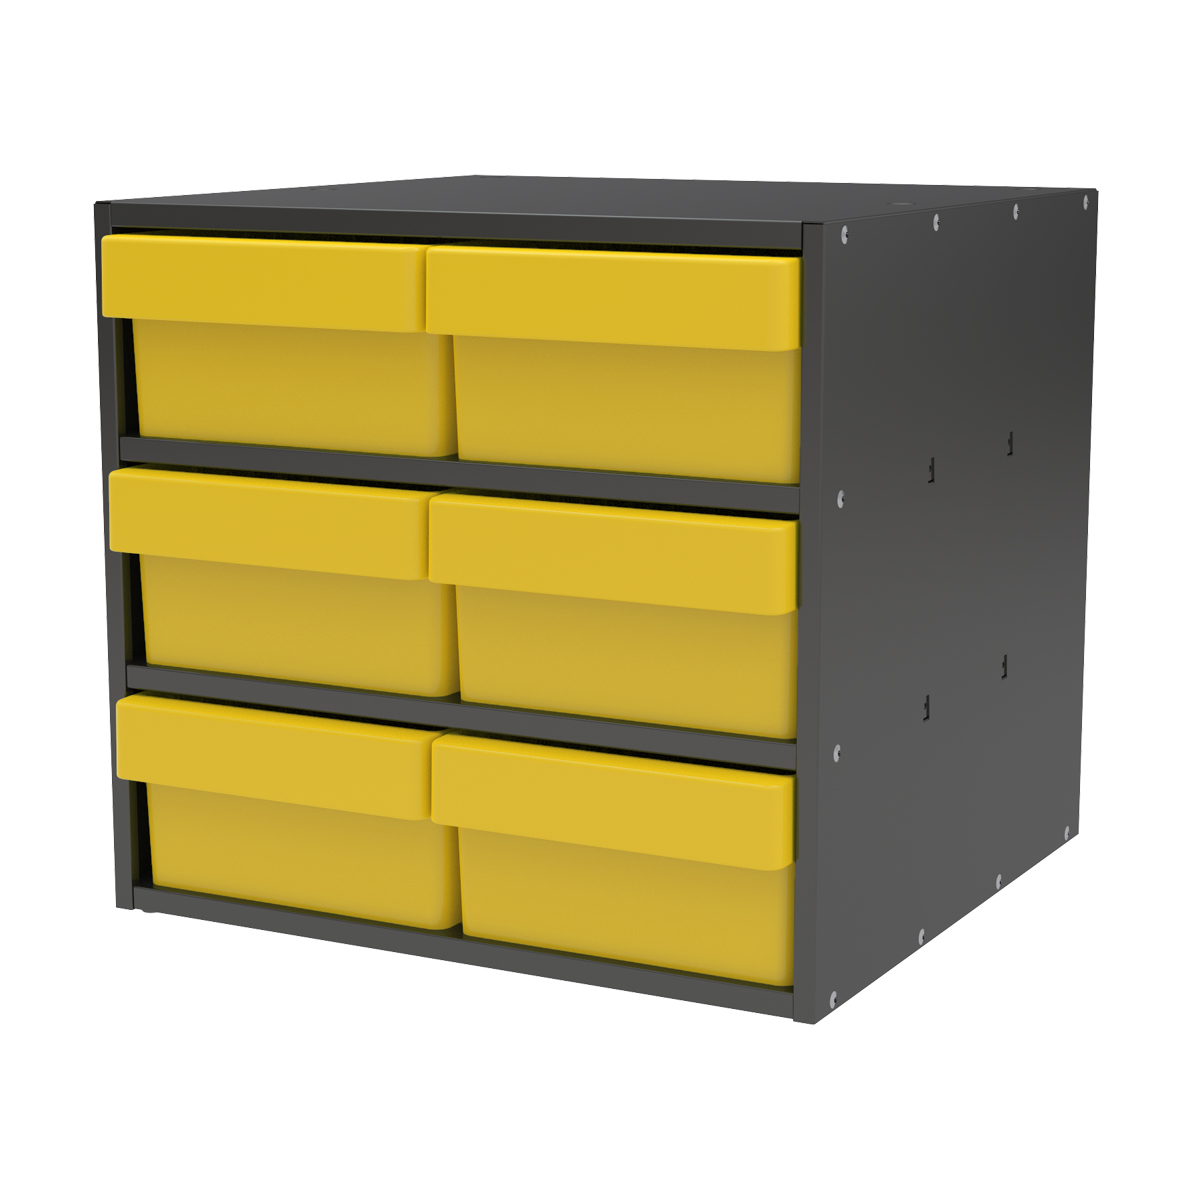 Item DISCONTINUED by Manufacturer.  Modular Cabinet, 18x17x16, 6 Drawers, Gray/Yellow (AD1817C88YEL).  This item sold in carton quantities of 1.